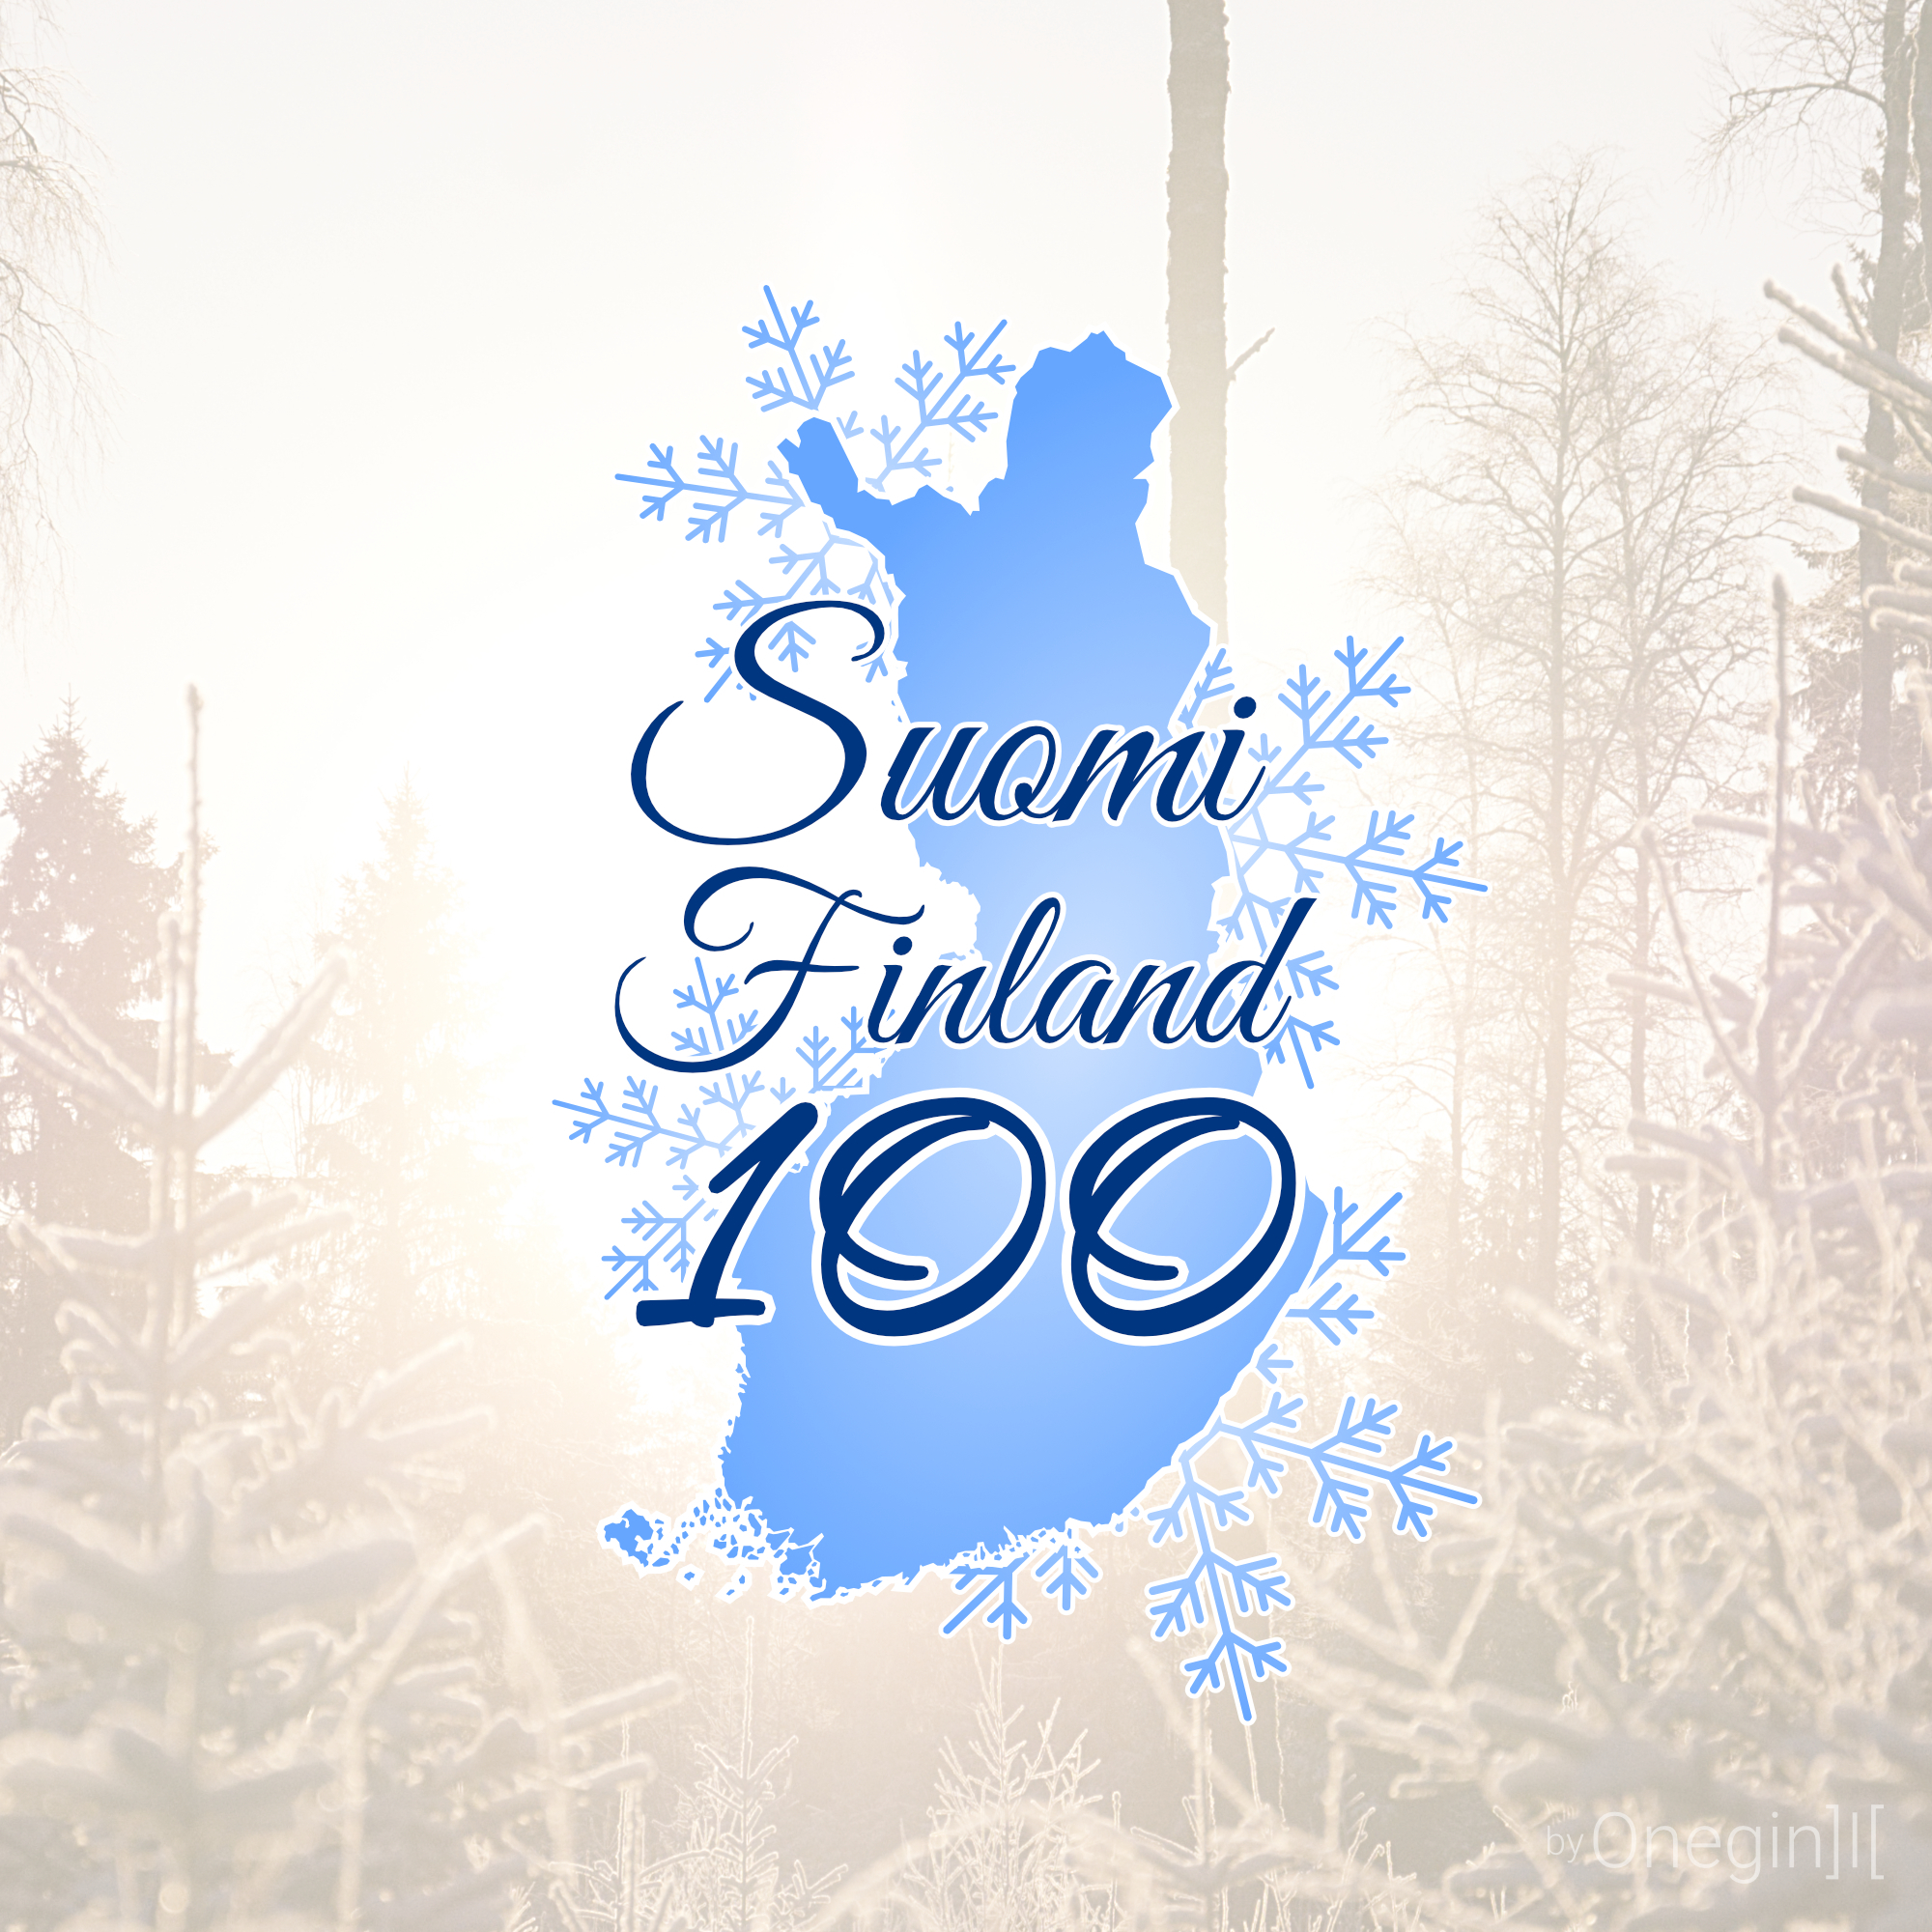 Finland 100 Years of Independence by OneginIII